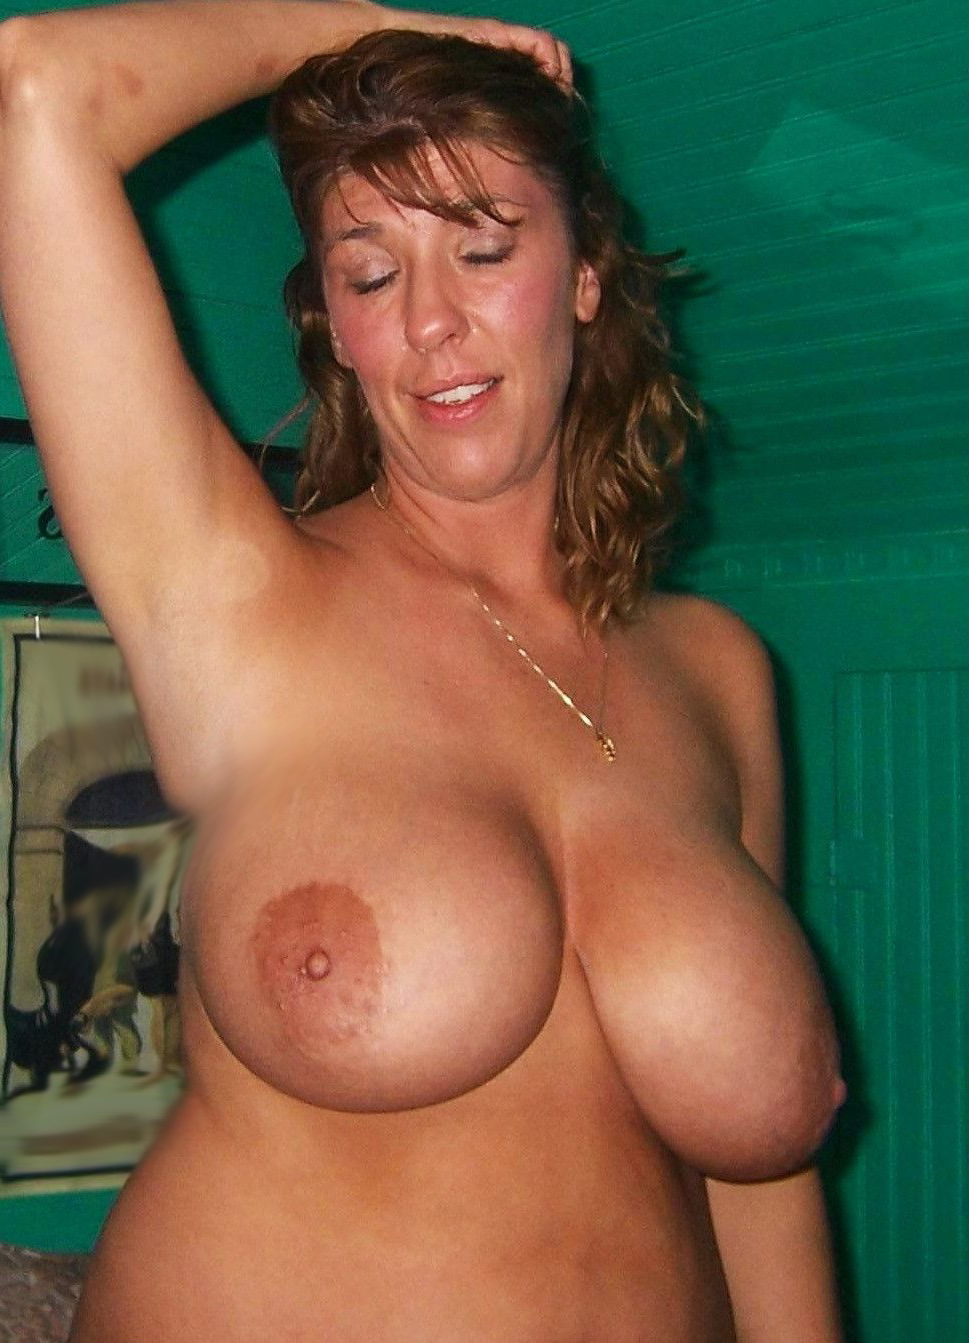 hot young fingered cunt shots